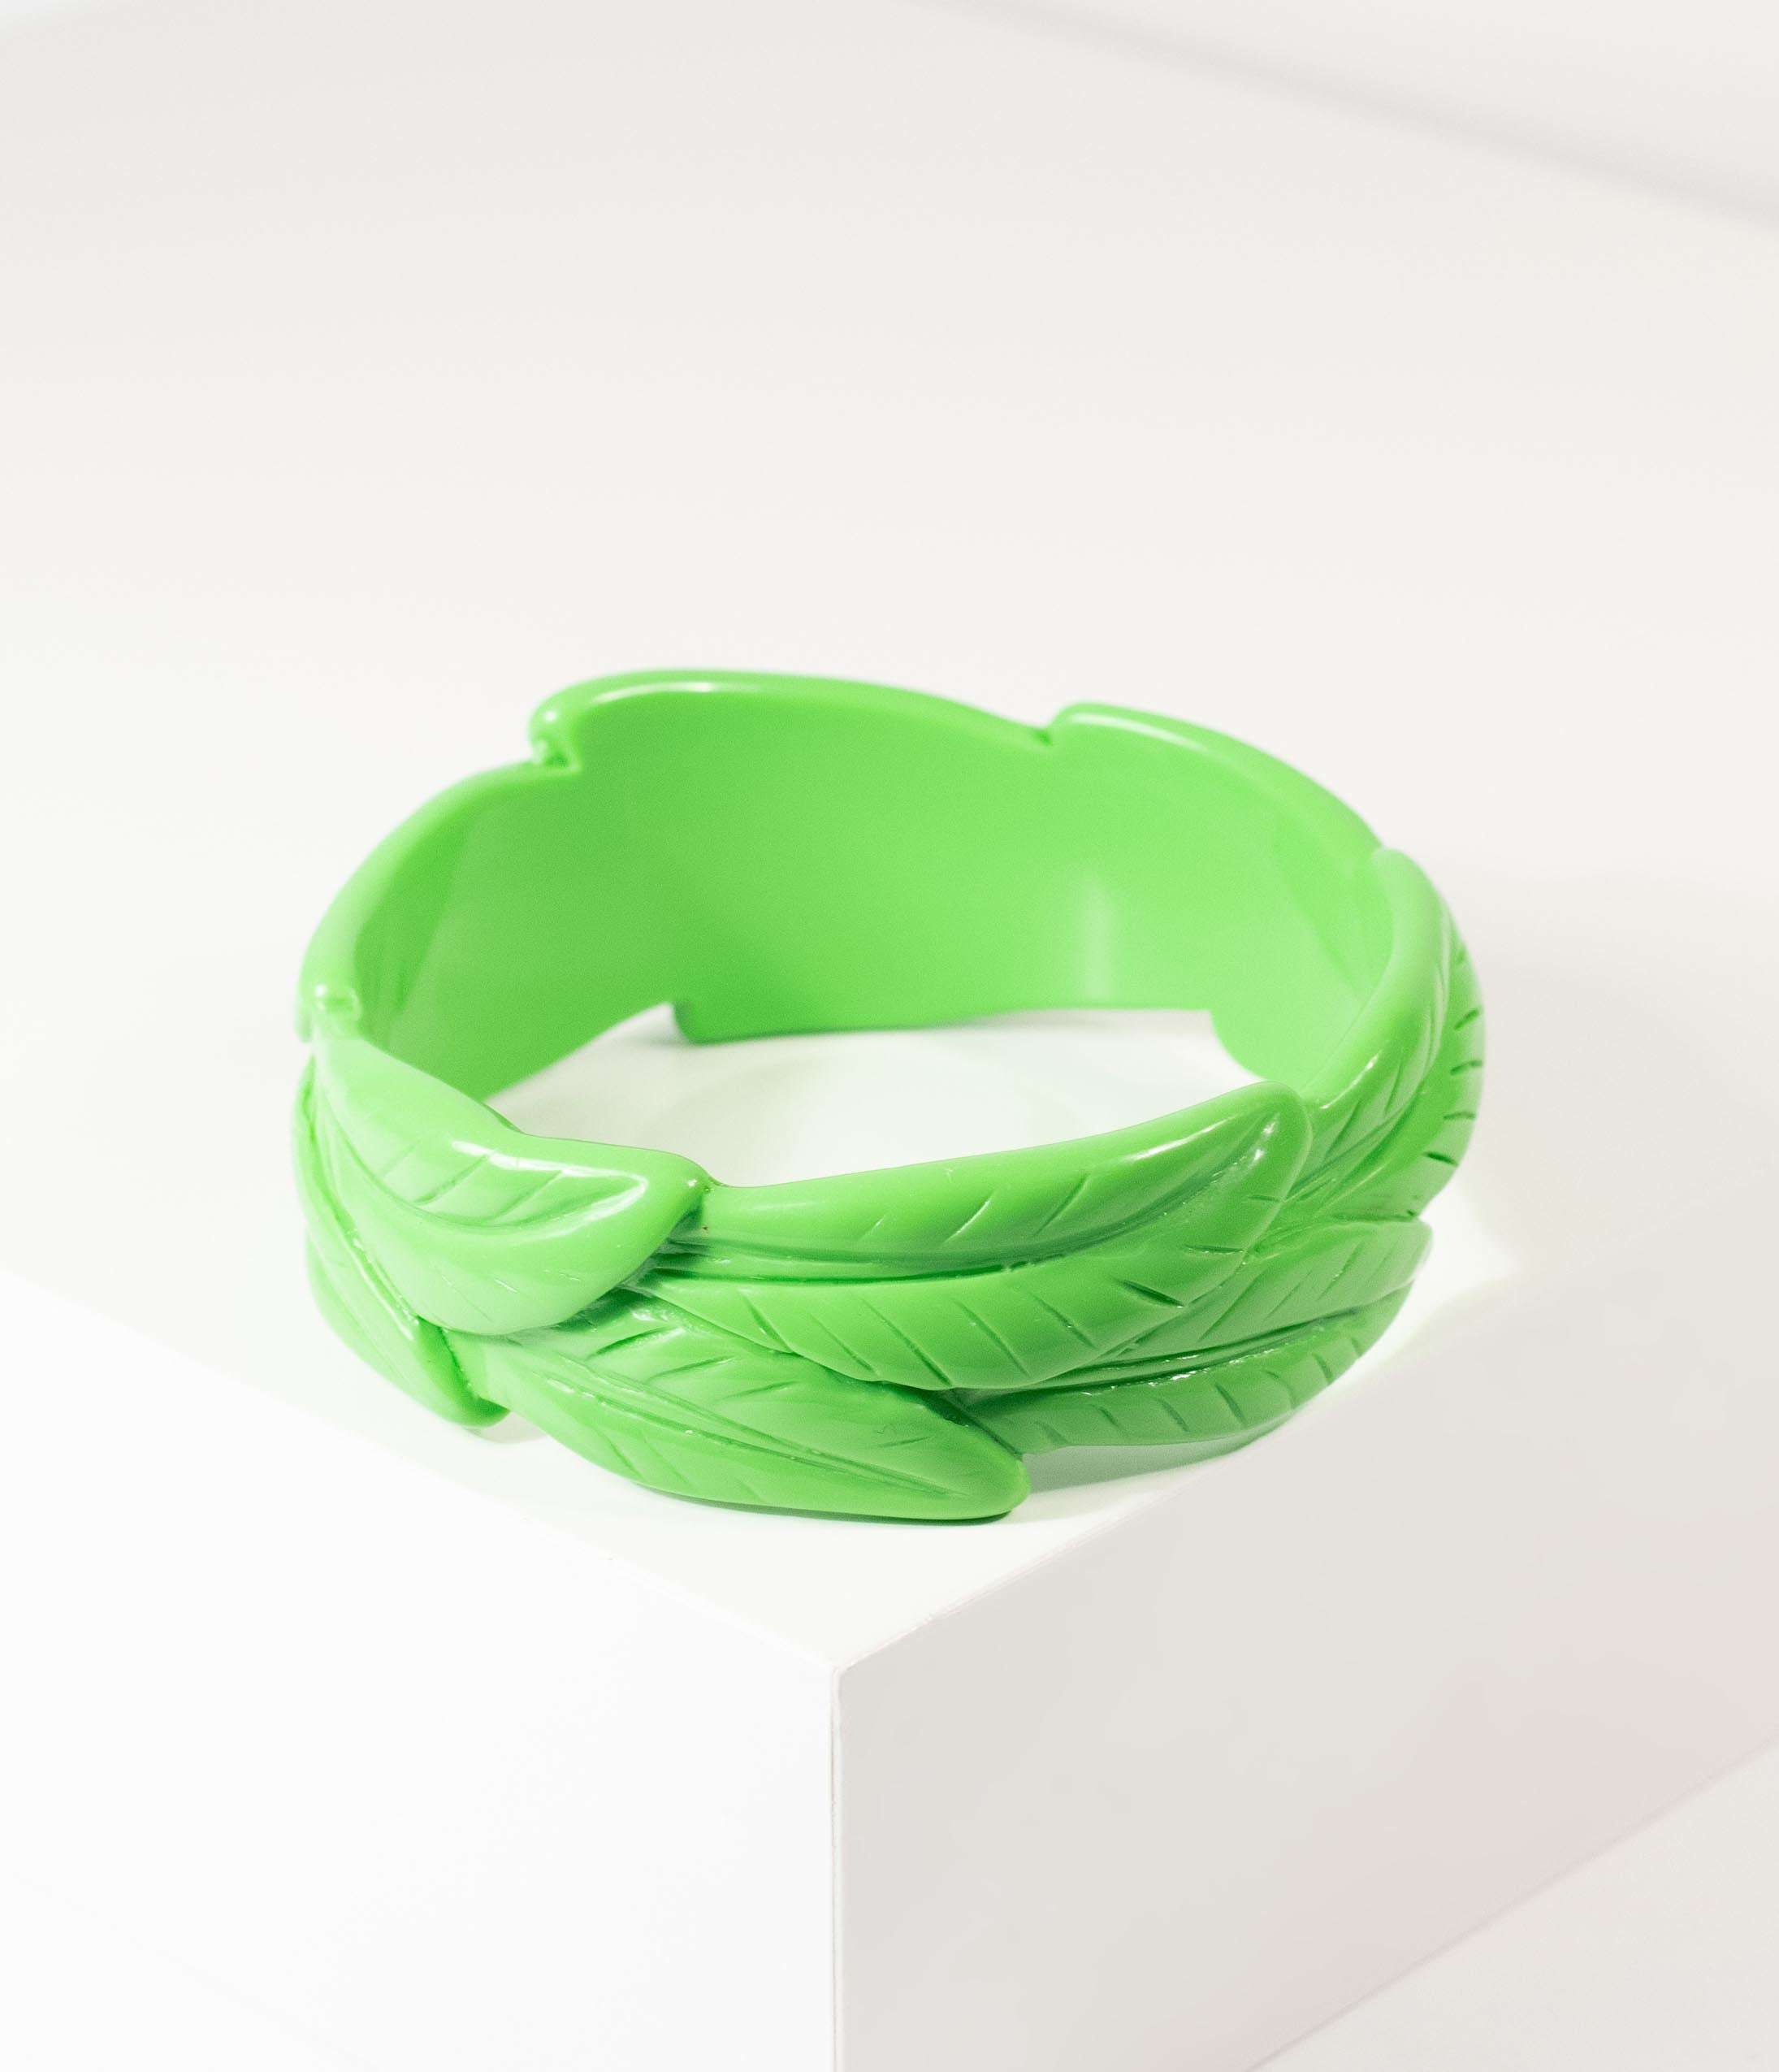 1950s Jewelry Styles and History Green Tropical Leaf Carved Resin Bangle Bracelet $17.00 AT vintagedancer.com